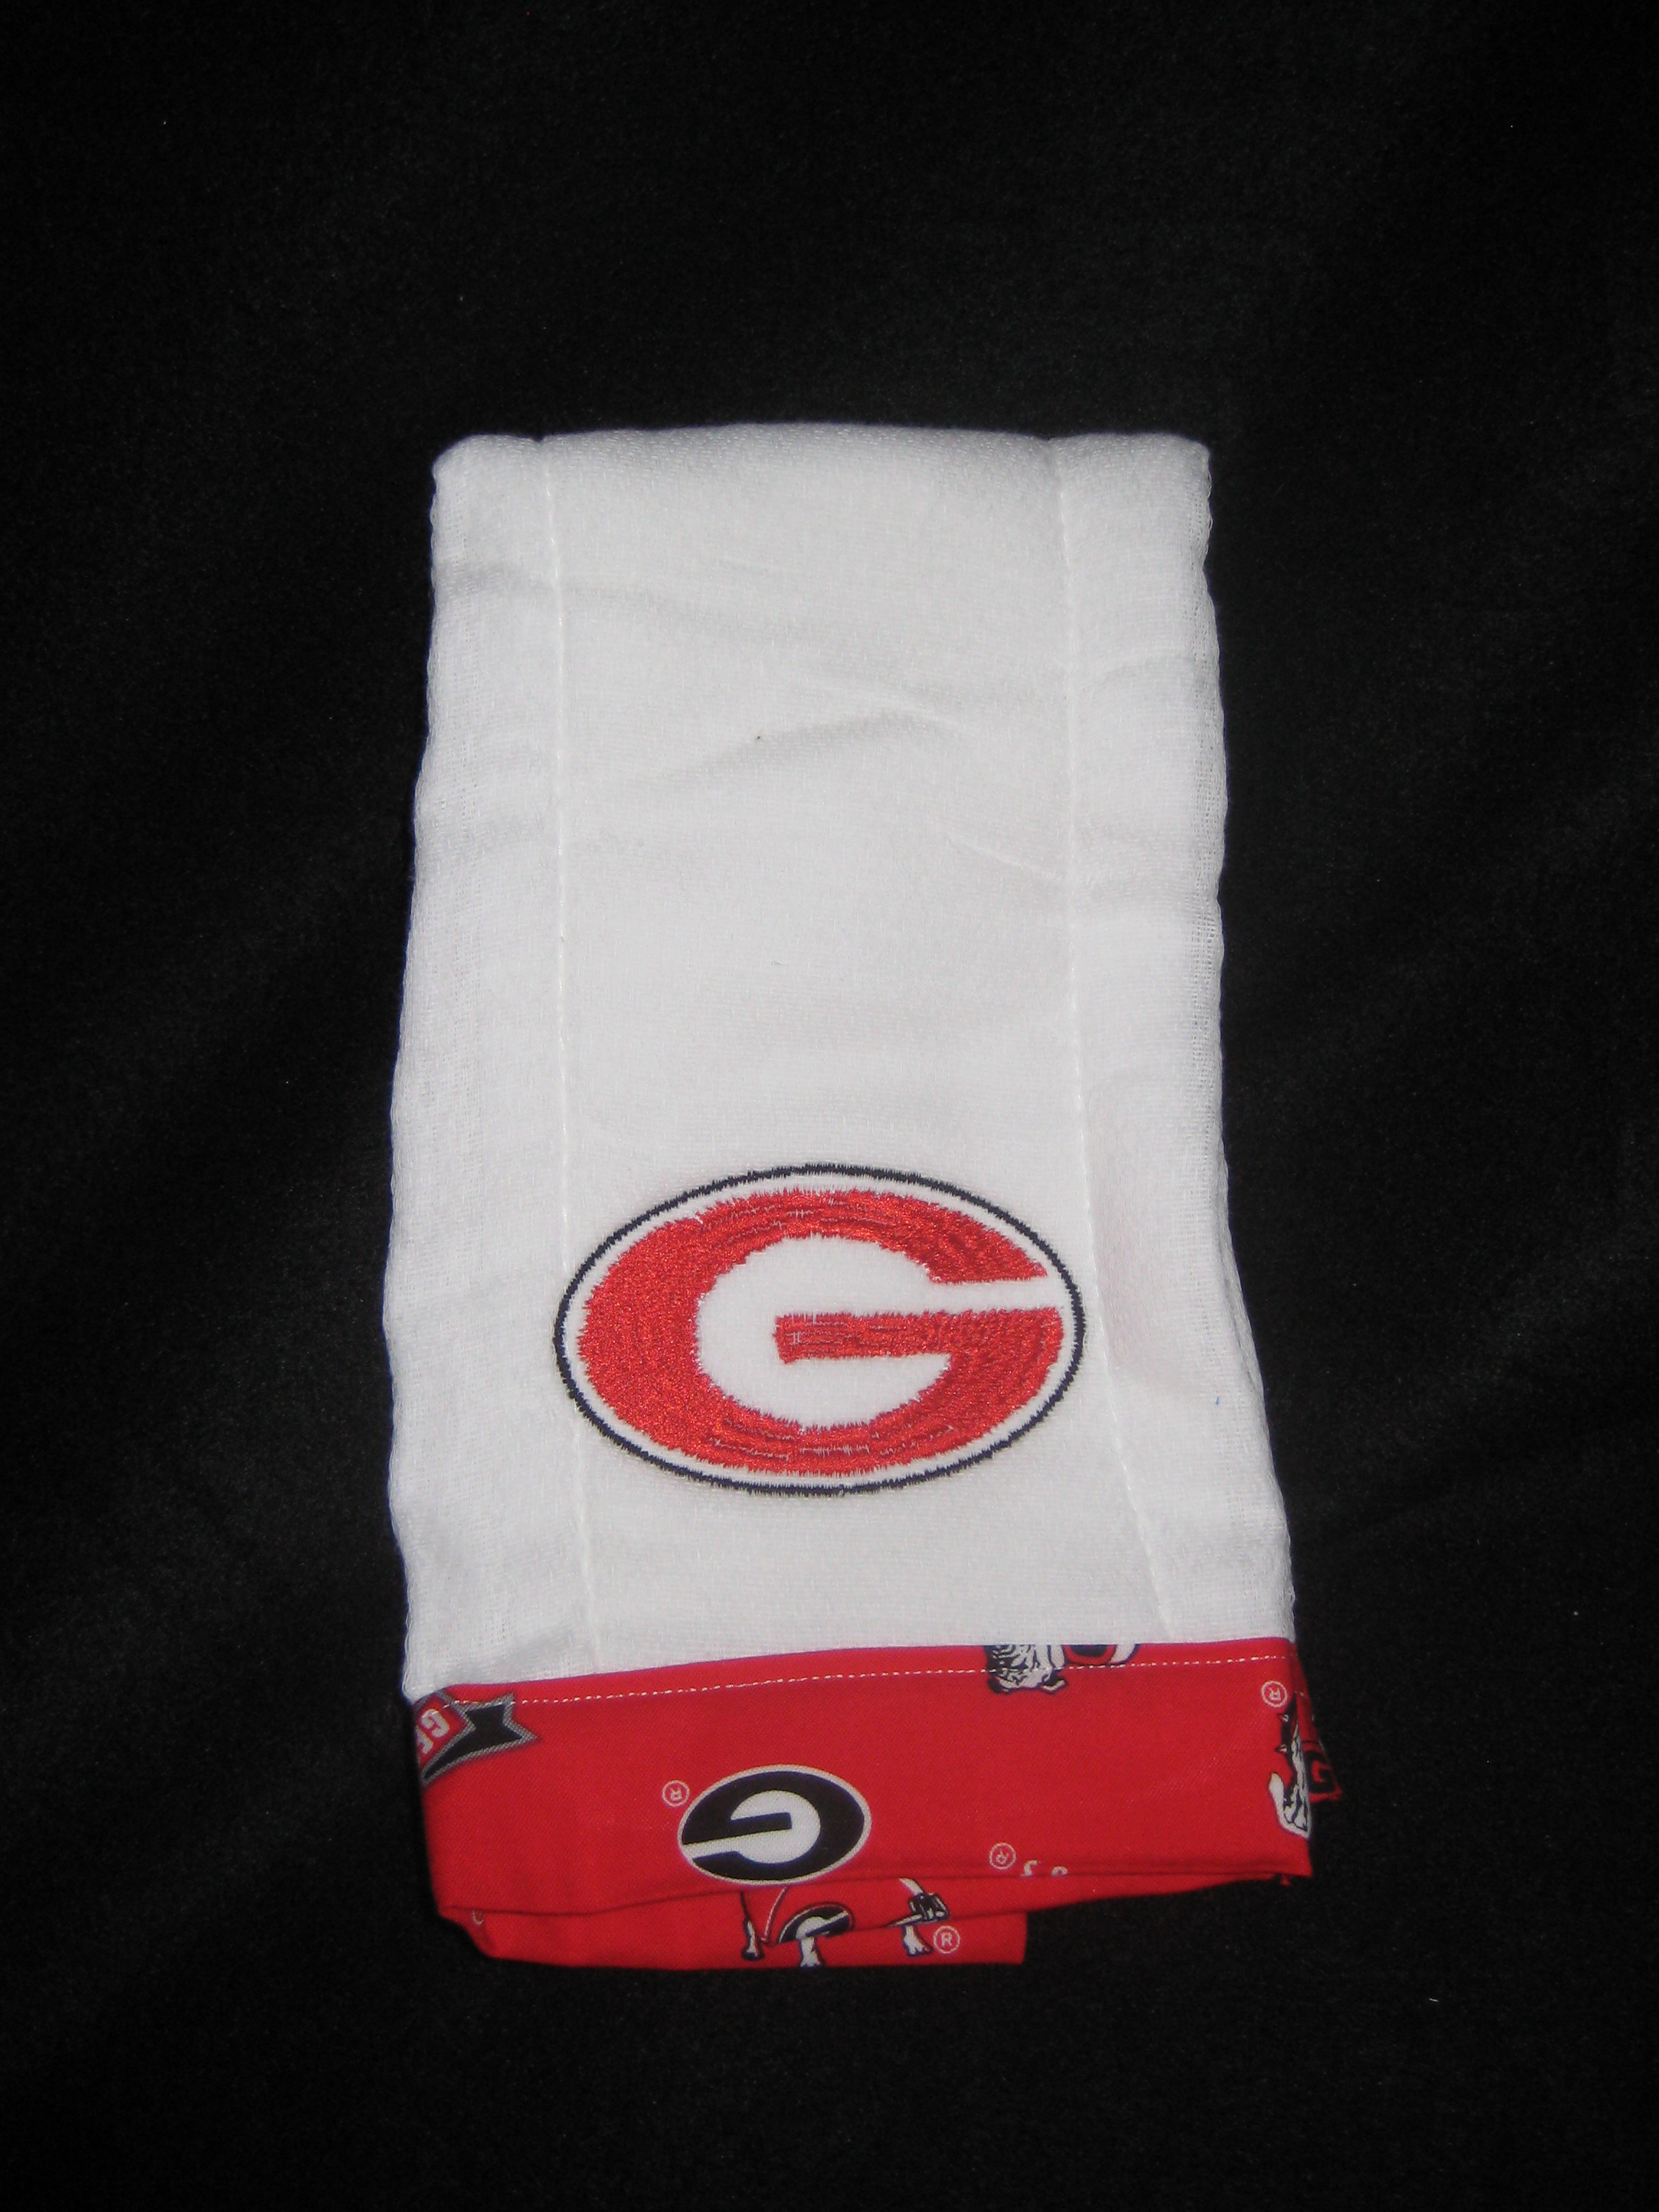 Georgia burp cloth.jpg